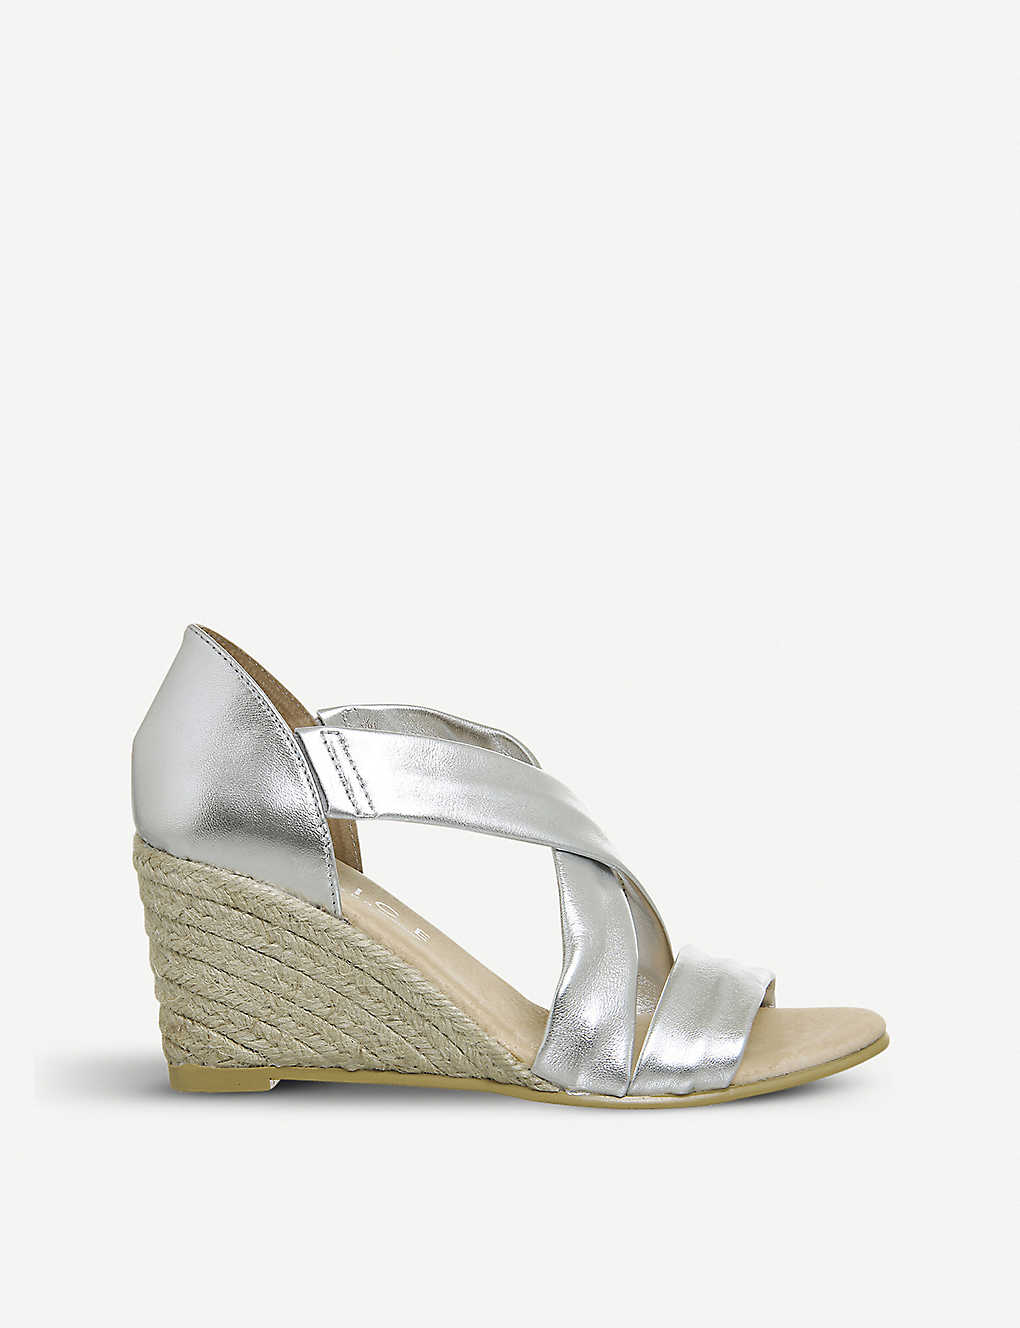 78c877afc4 OFFICE - Maiden cross-strap metallic leather wedge sandals ...